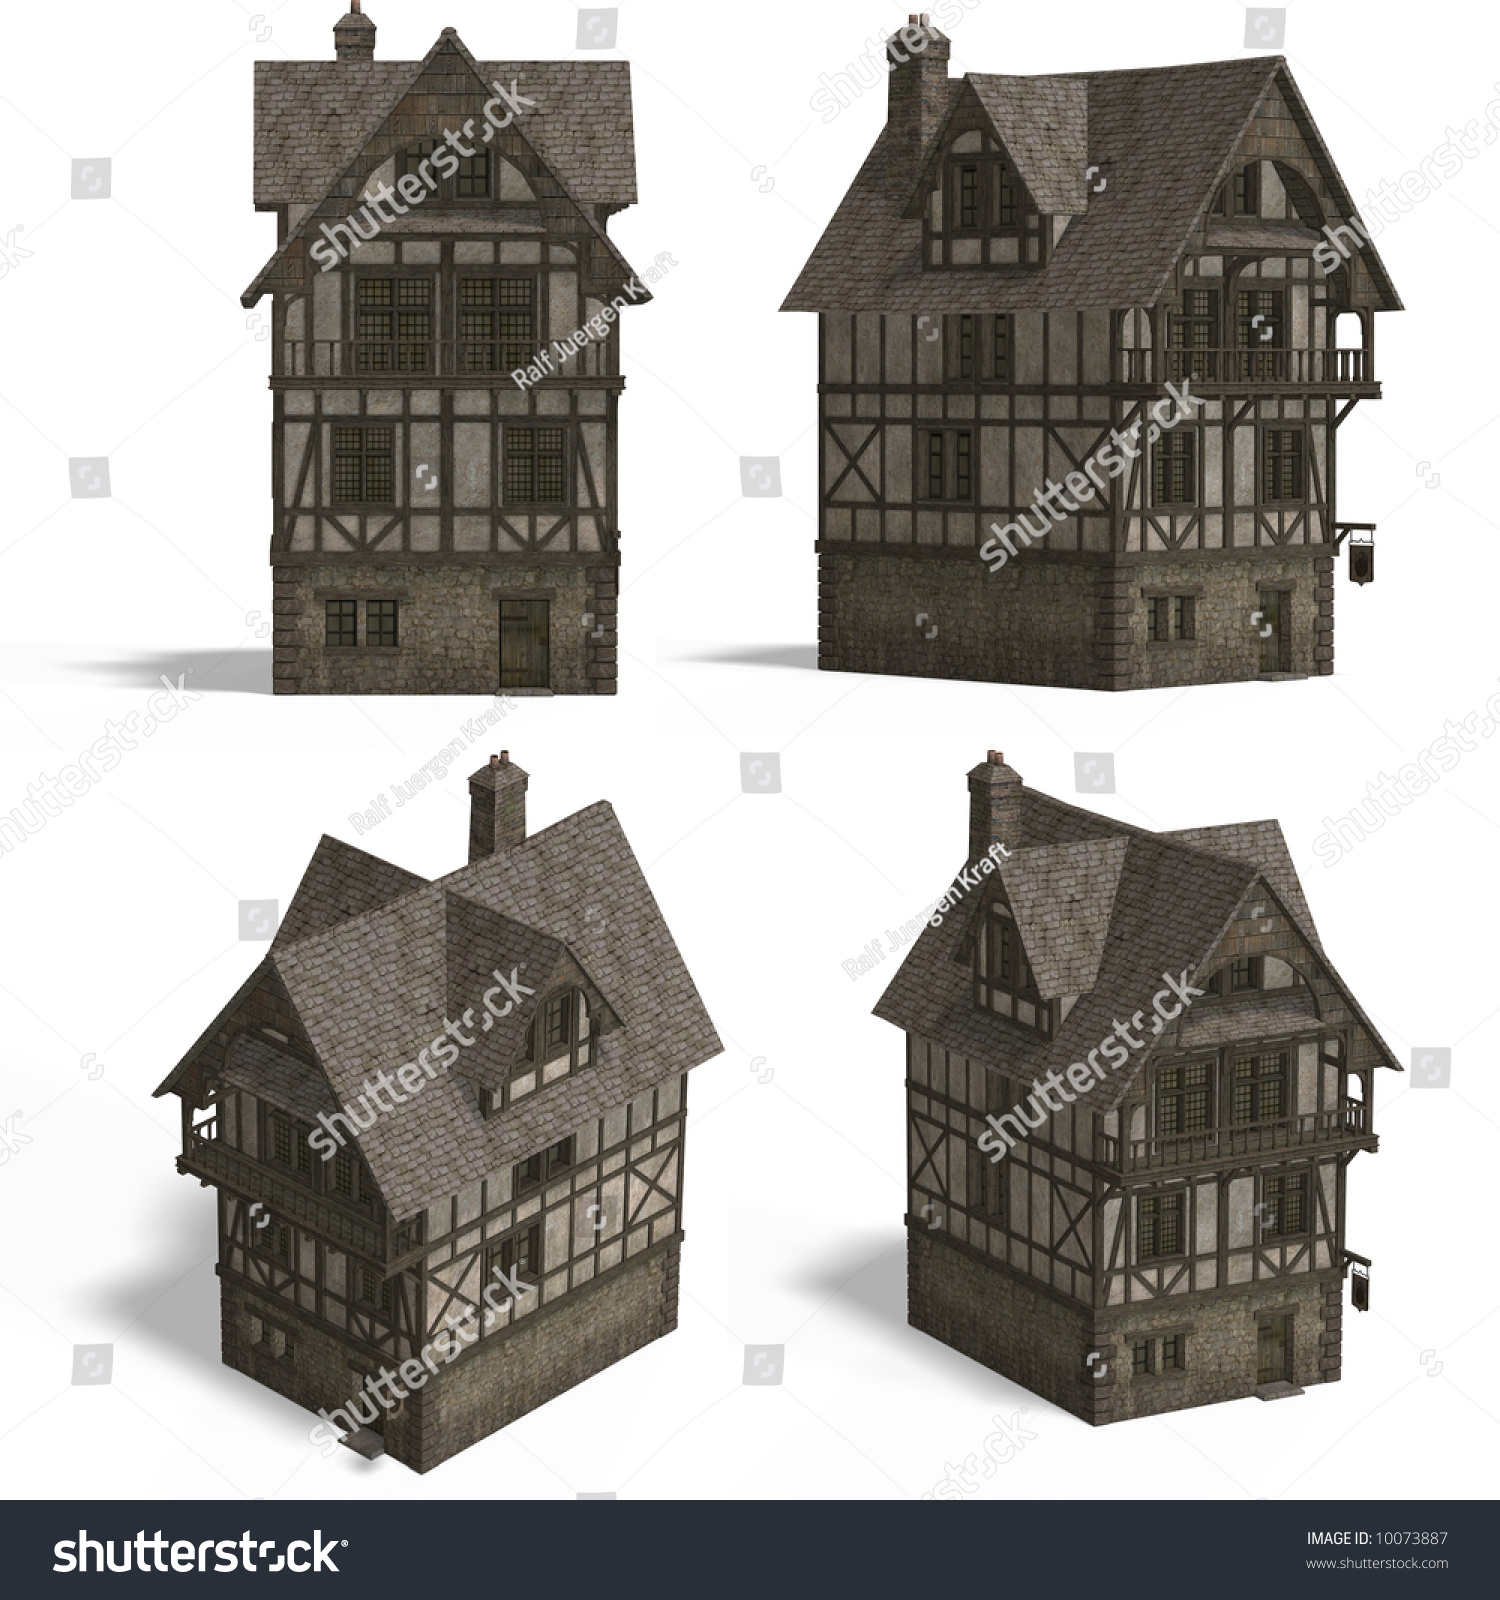 four views old fashioned house over stock illustration 10073887